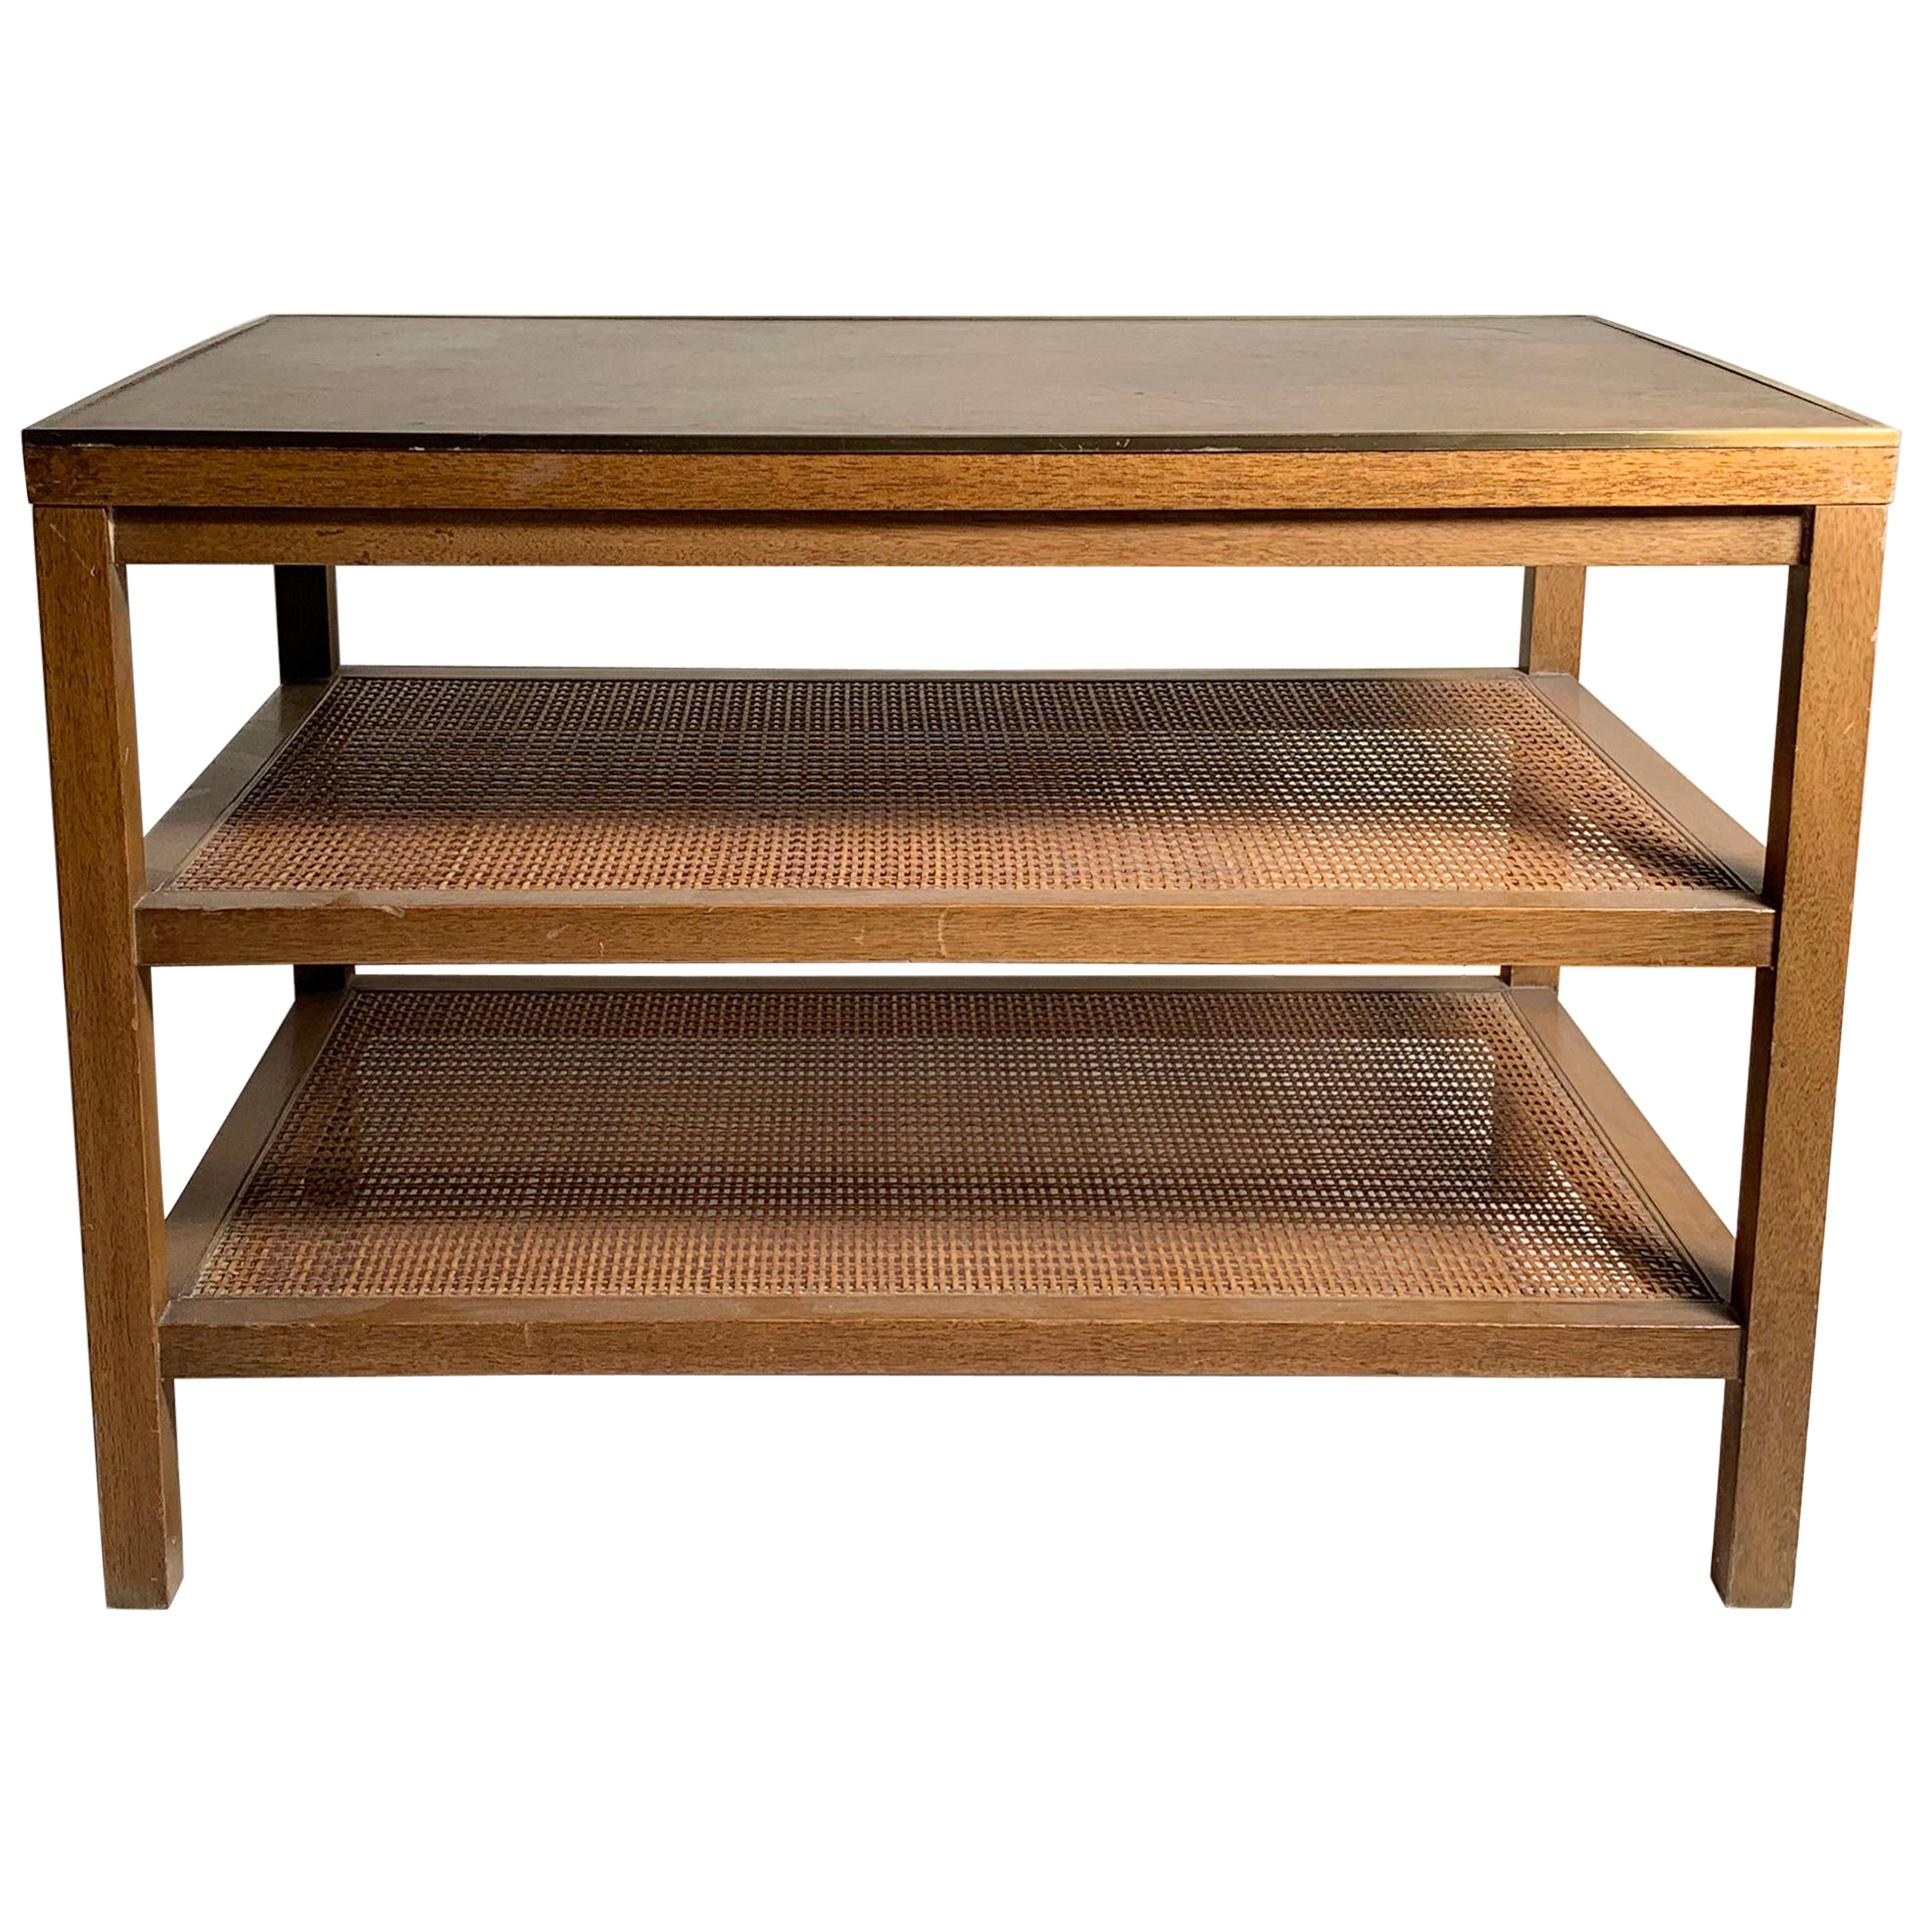 Paul McCobb Brass Inset Leather Caned Magazine Table